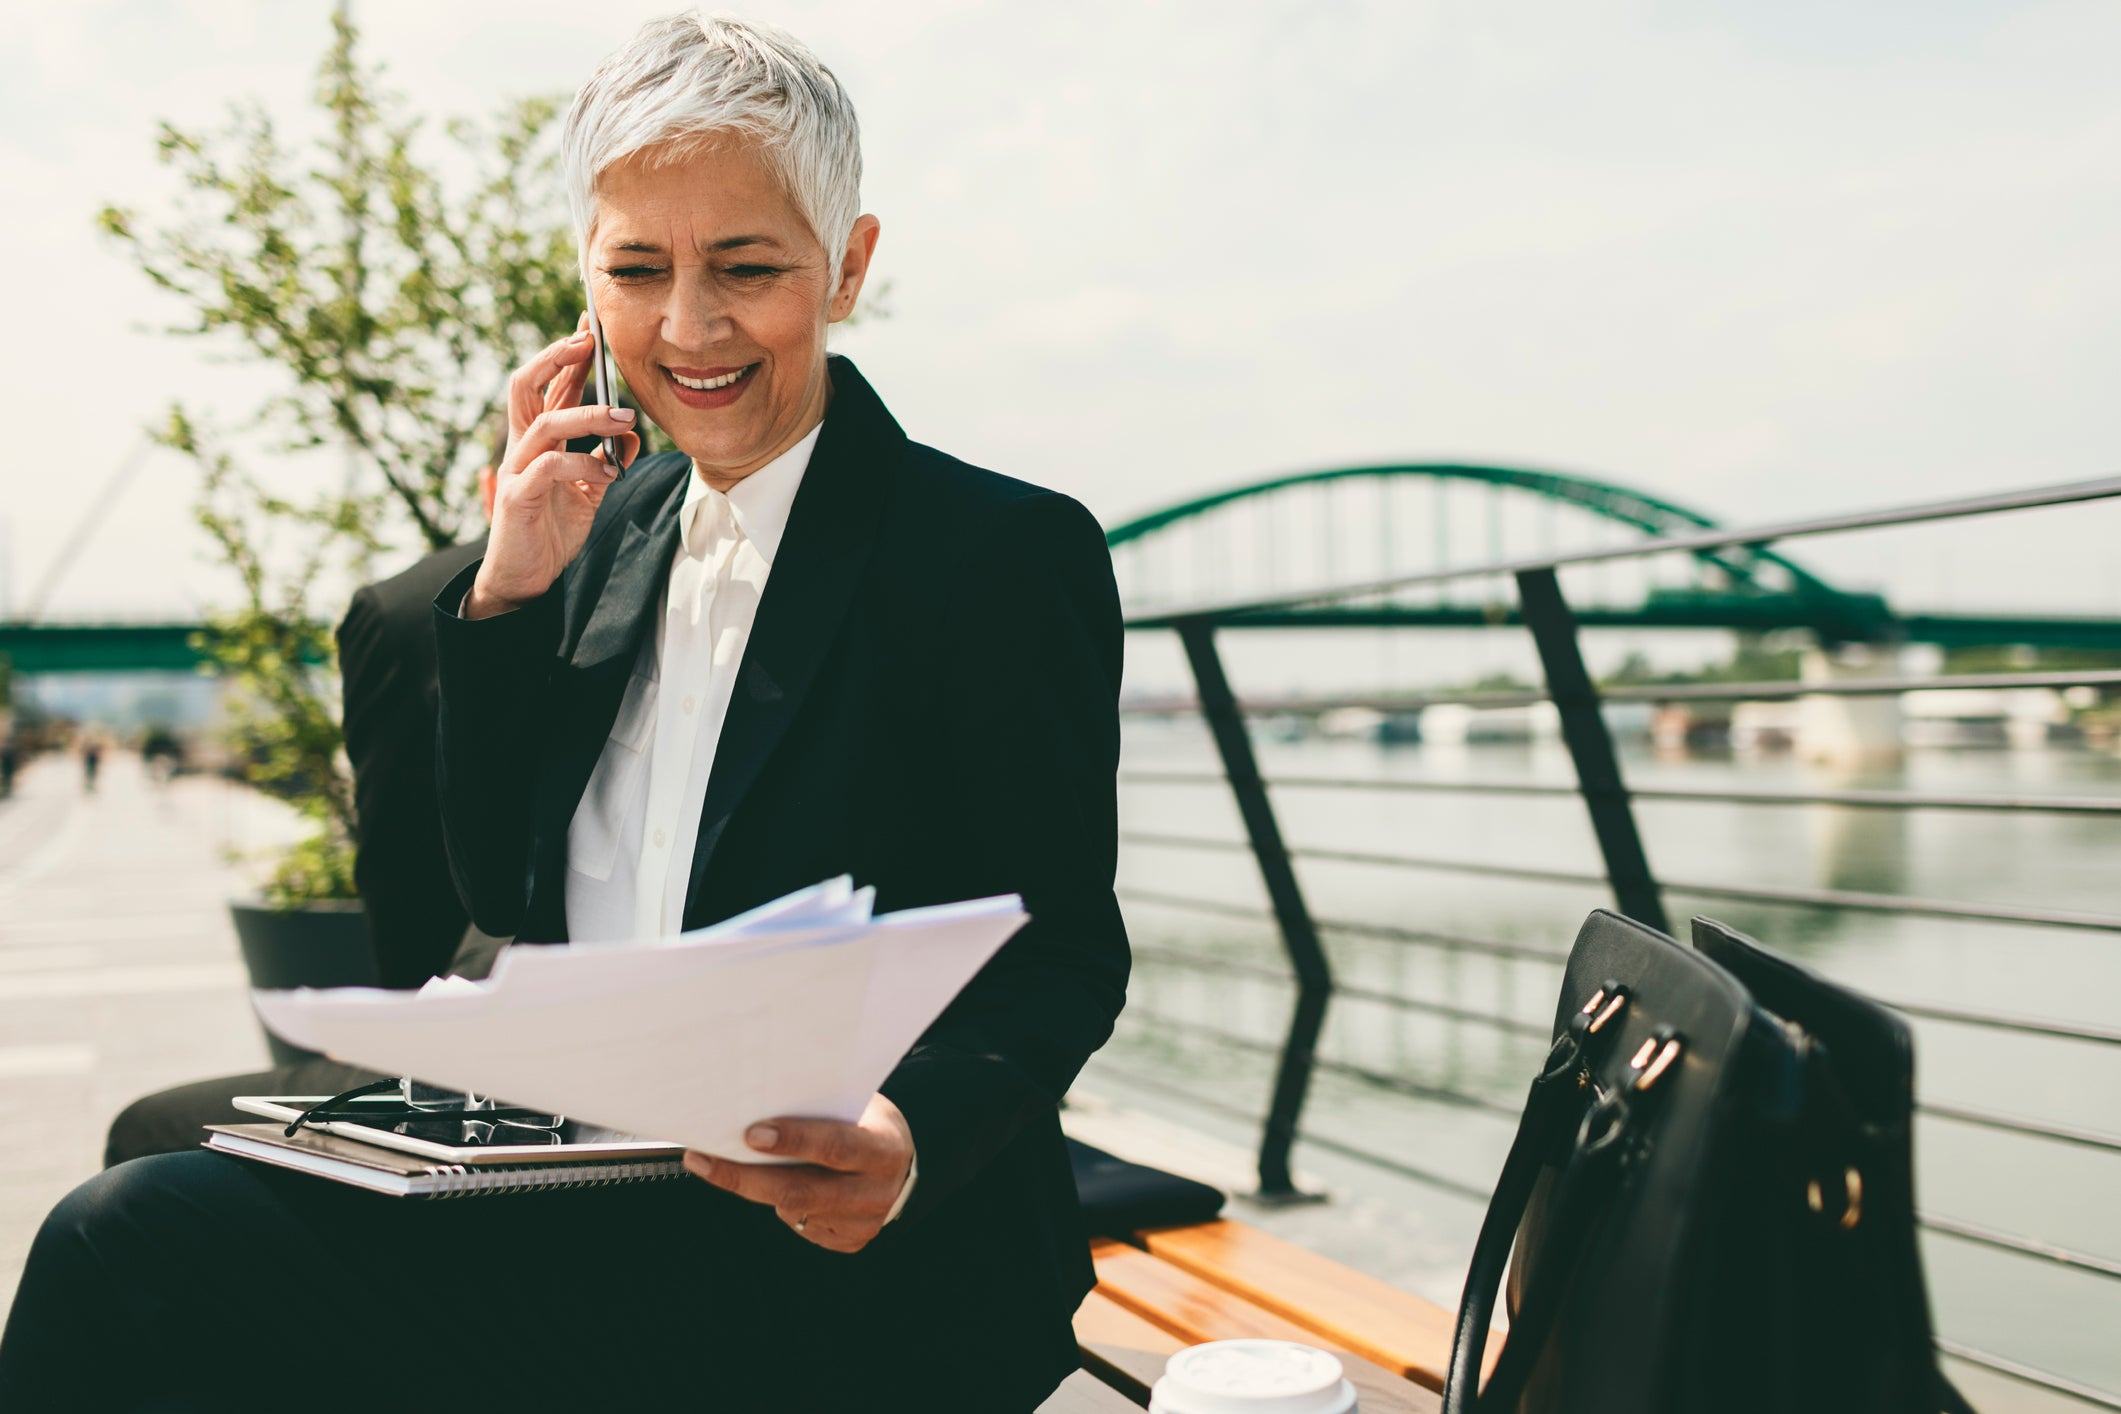 Middle-aged businesswoman sitting on a bench and talking on a cellphone